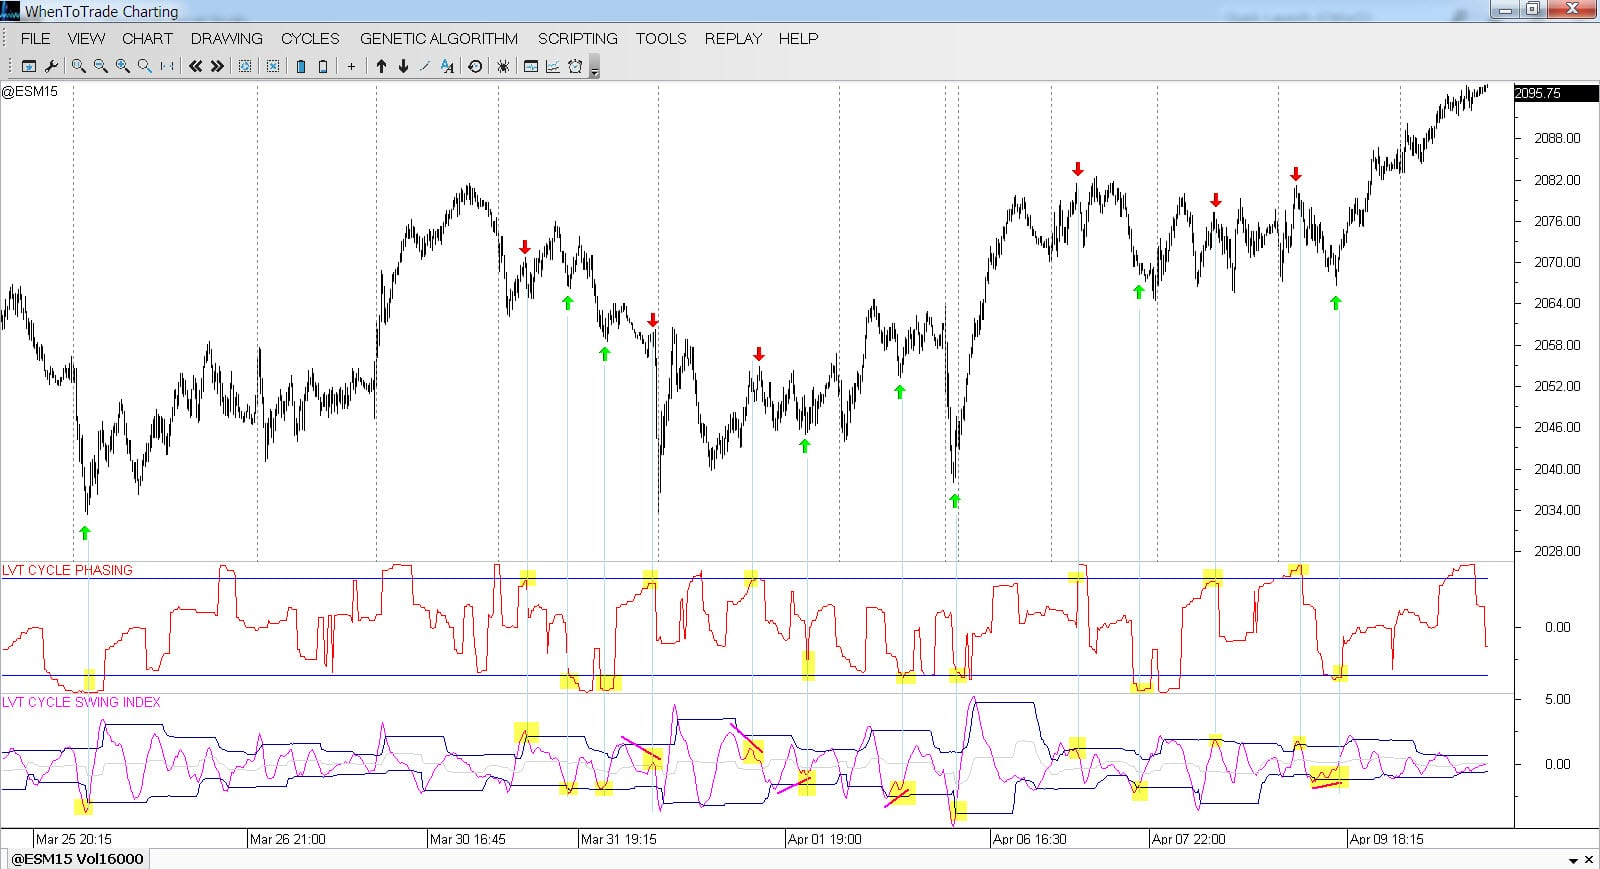 Cycle Phasing & Cycle Swing Indicator